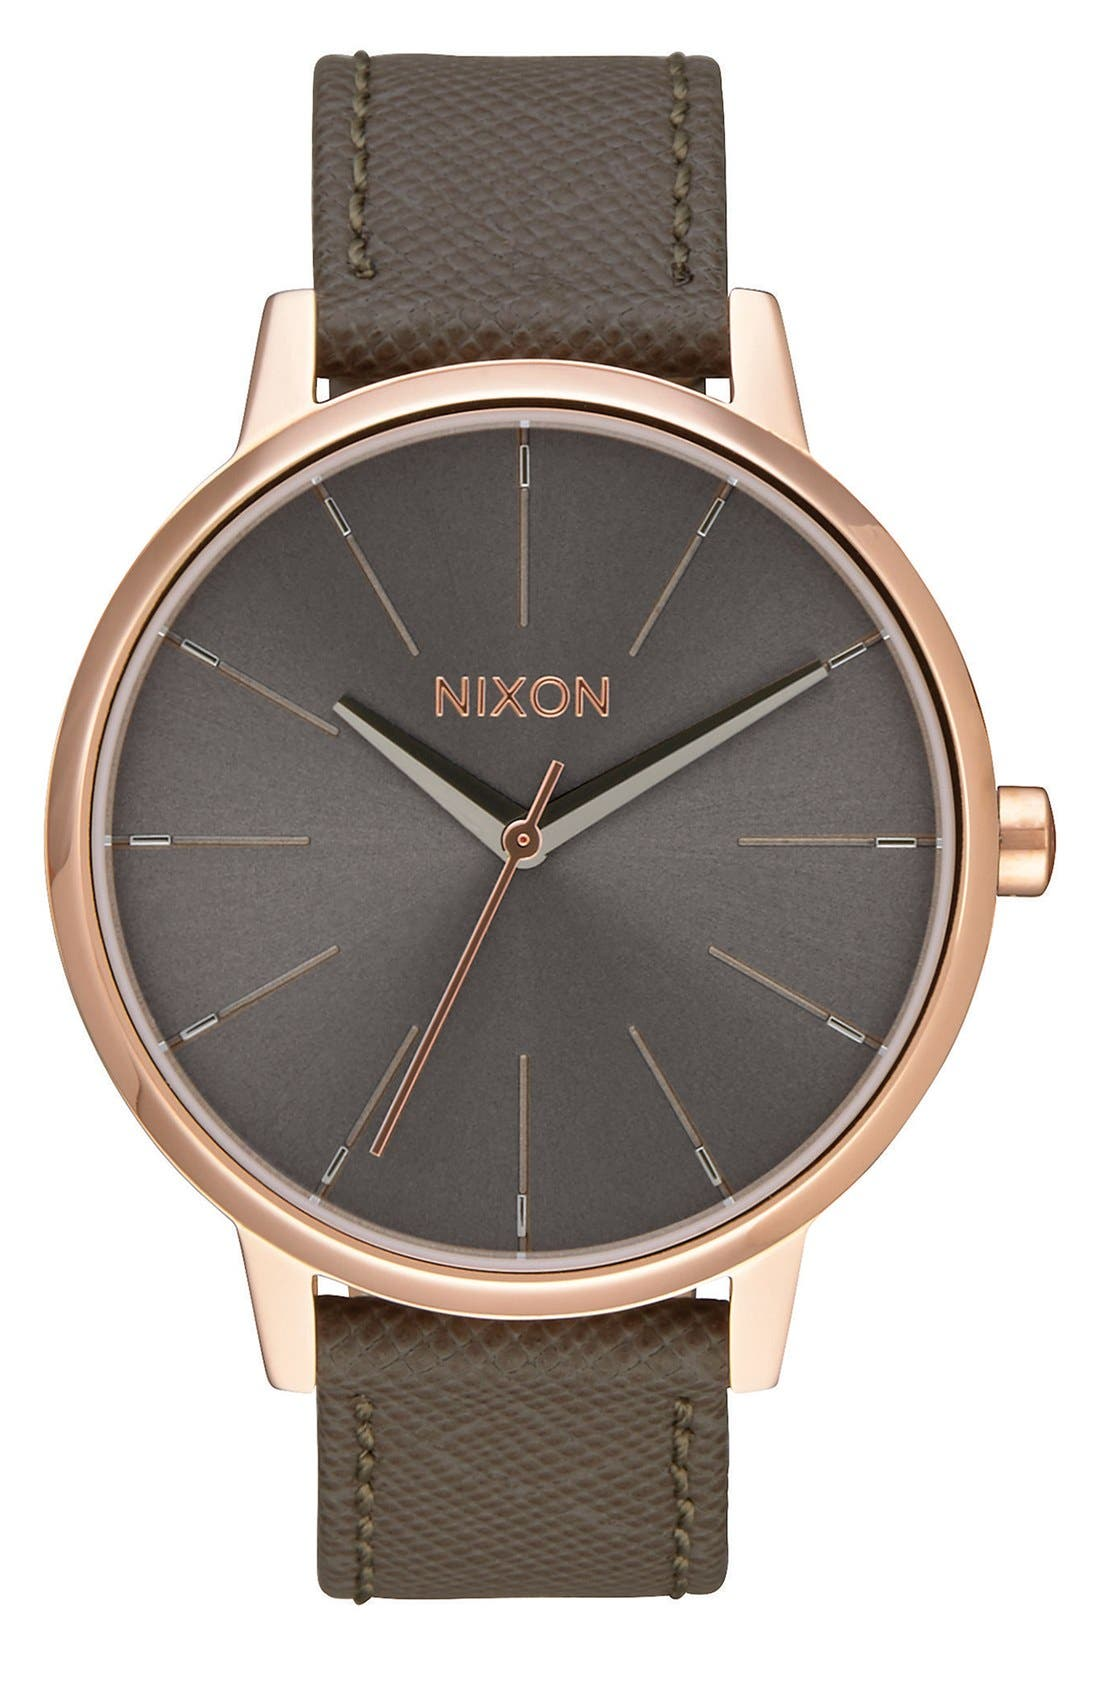 Nixon 'Kensington' Leather Strap Watch, 37mm